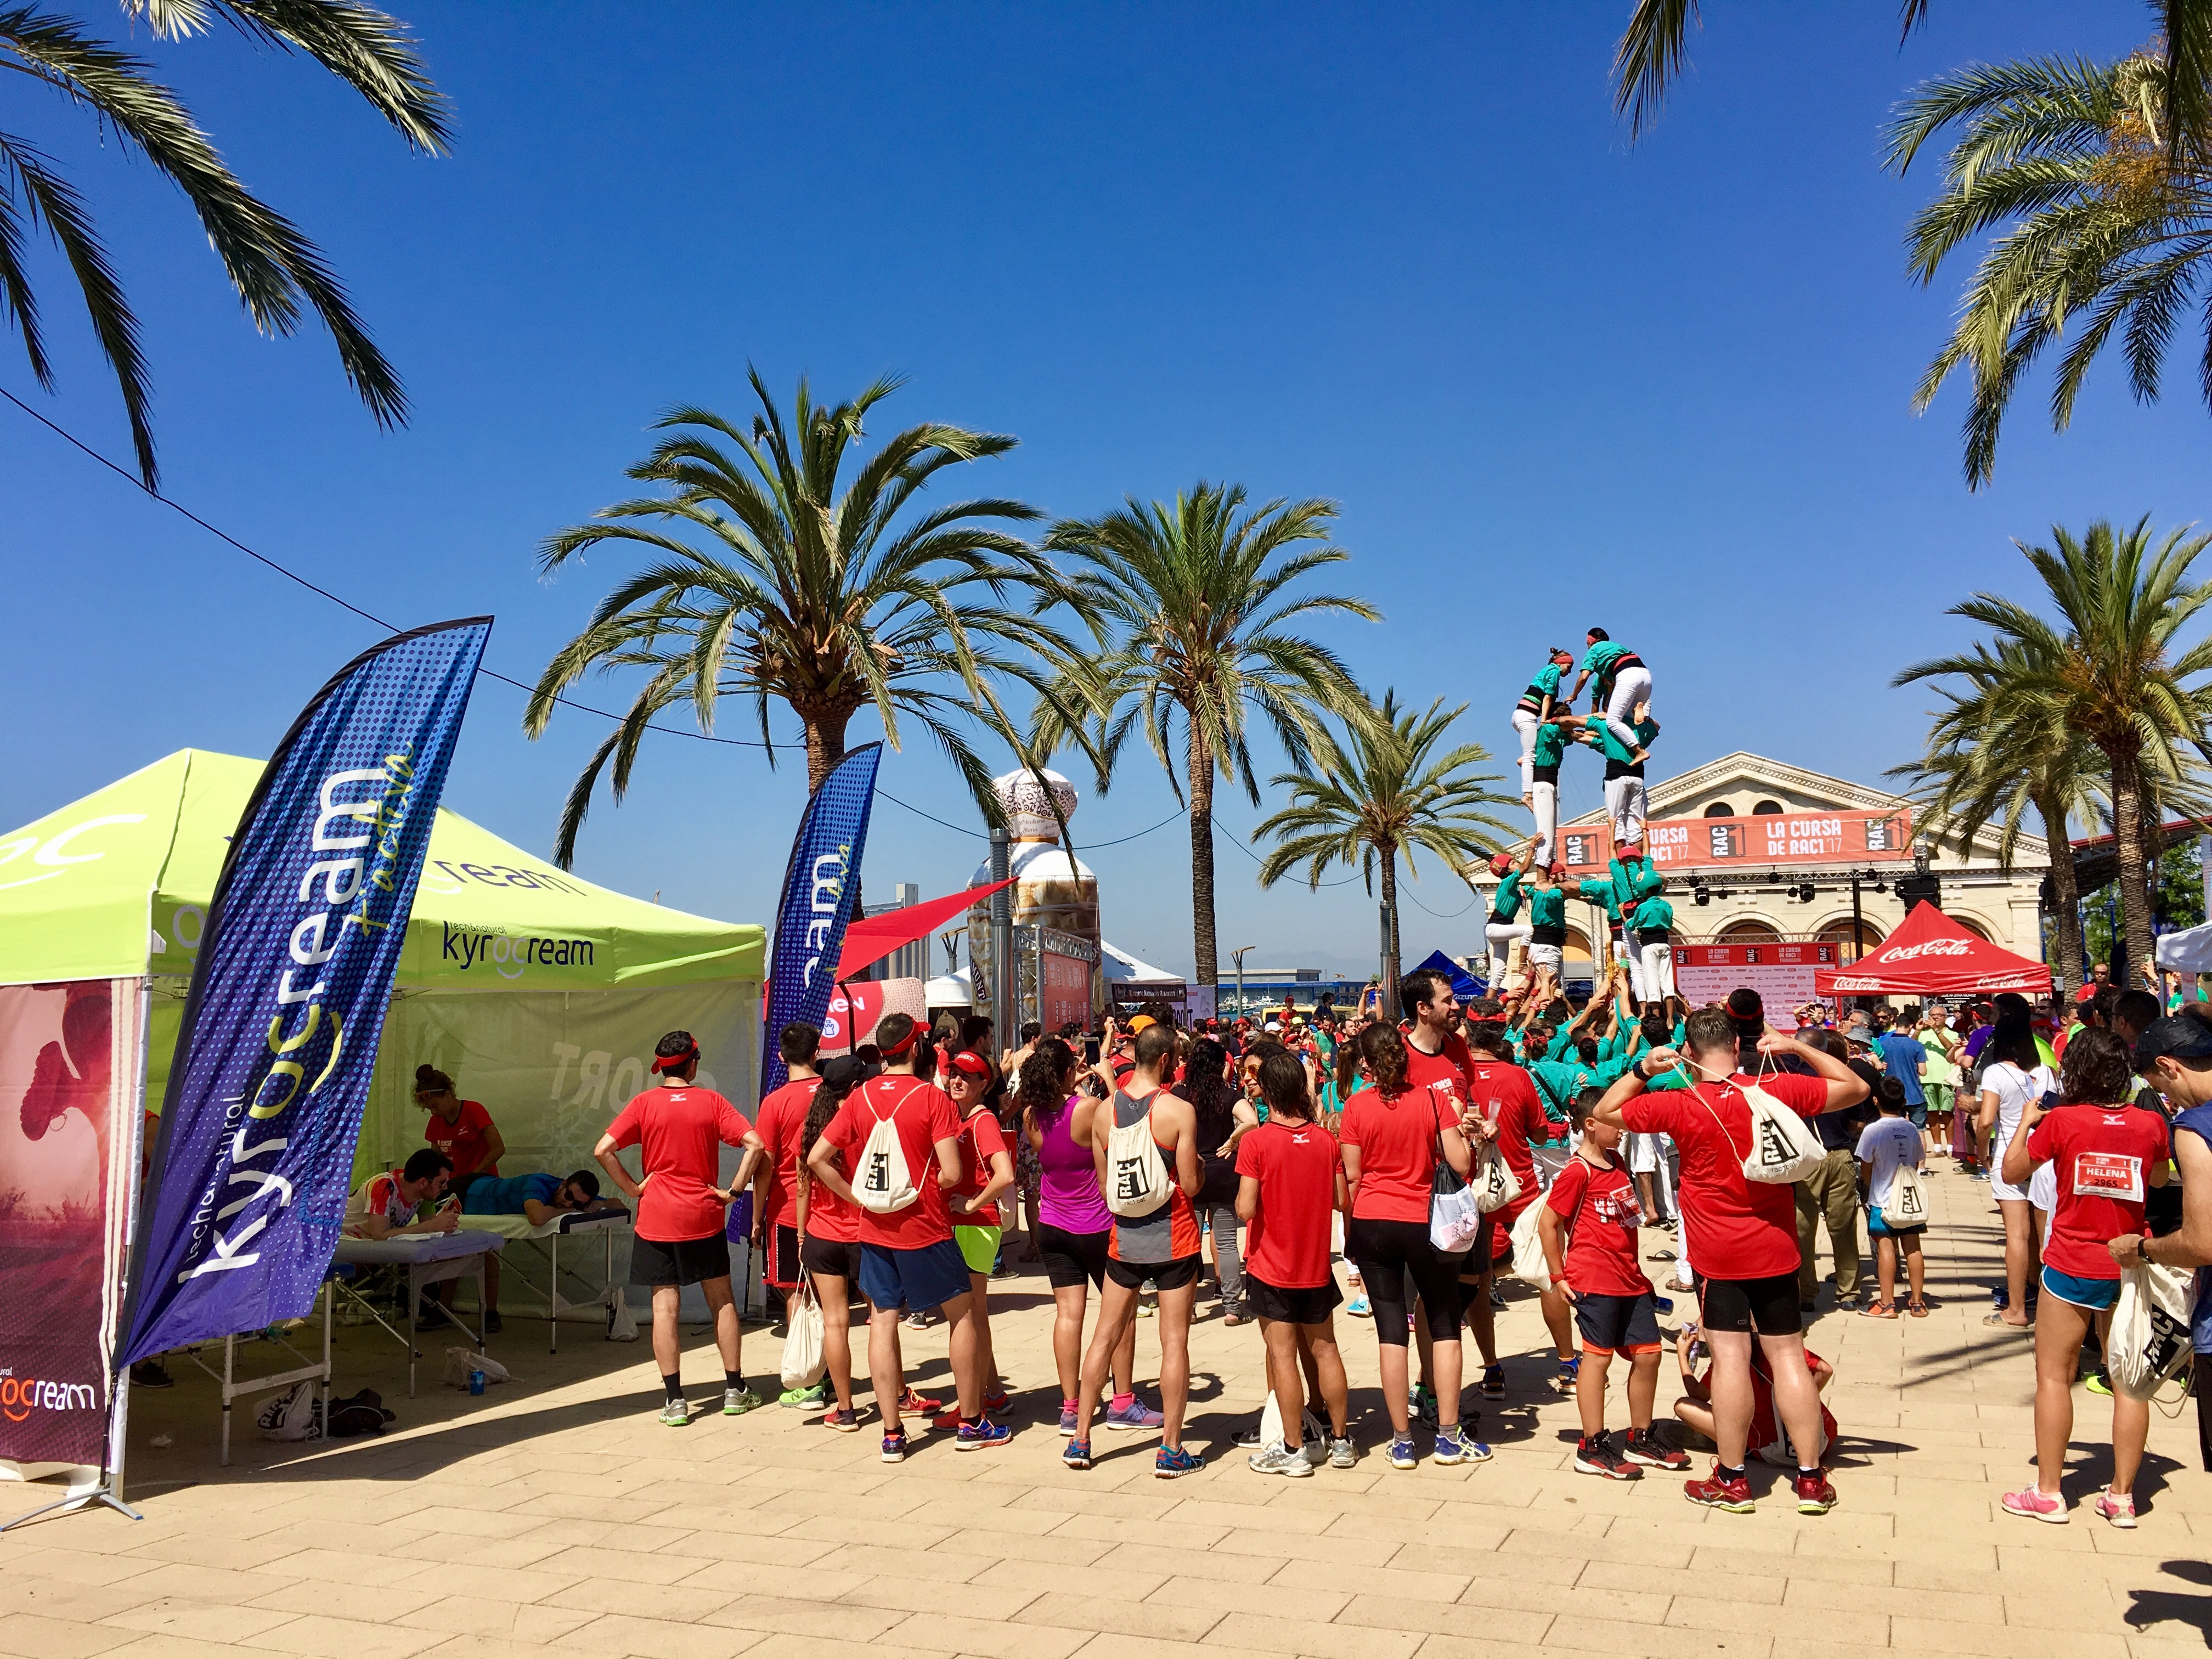 Kyrocream supports RAC1 runners in Tarragona